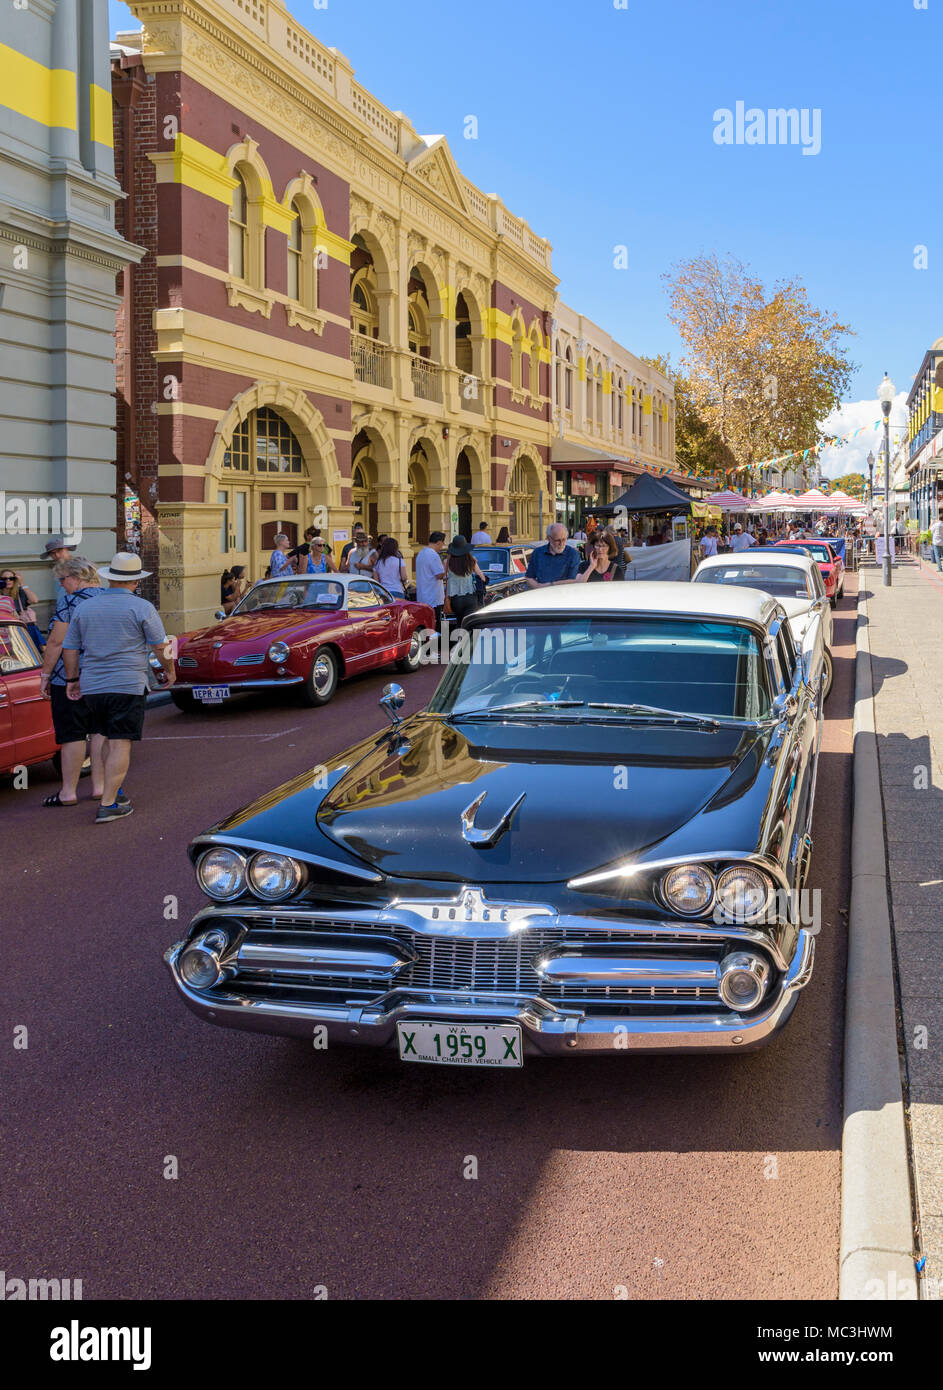 1959 Dodge Coronet American muscle car on the streets of Fremantle, Western Australia - Stock Image